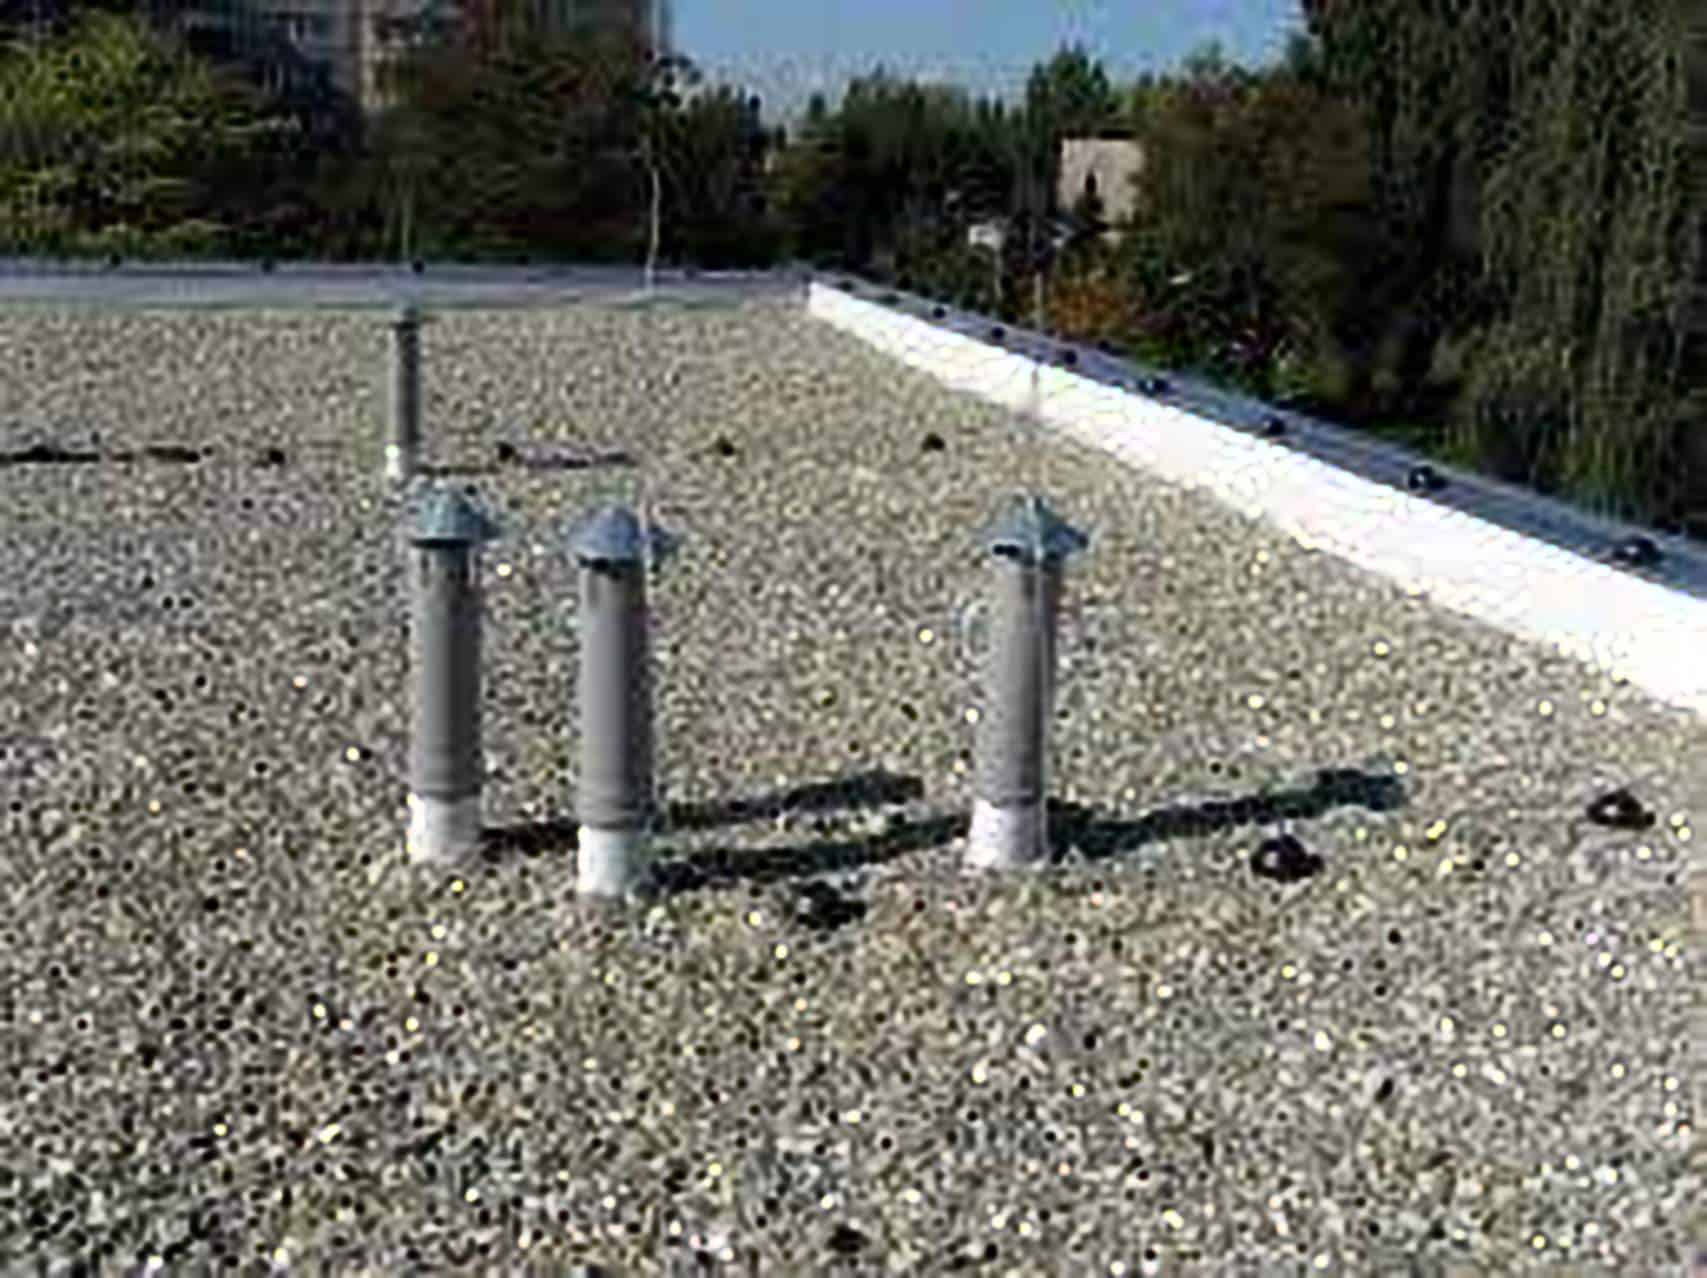 Flat Roof Problems - Picture of a Flat Roof